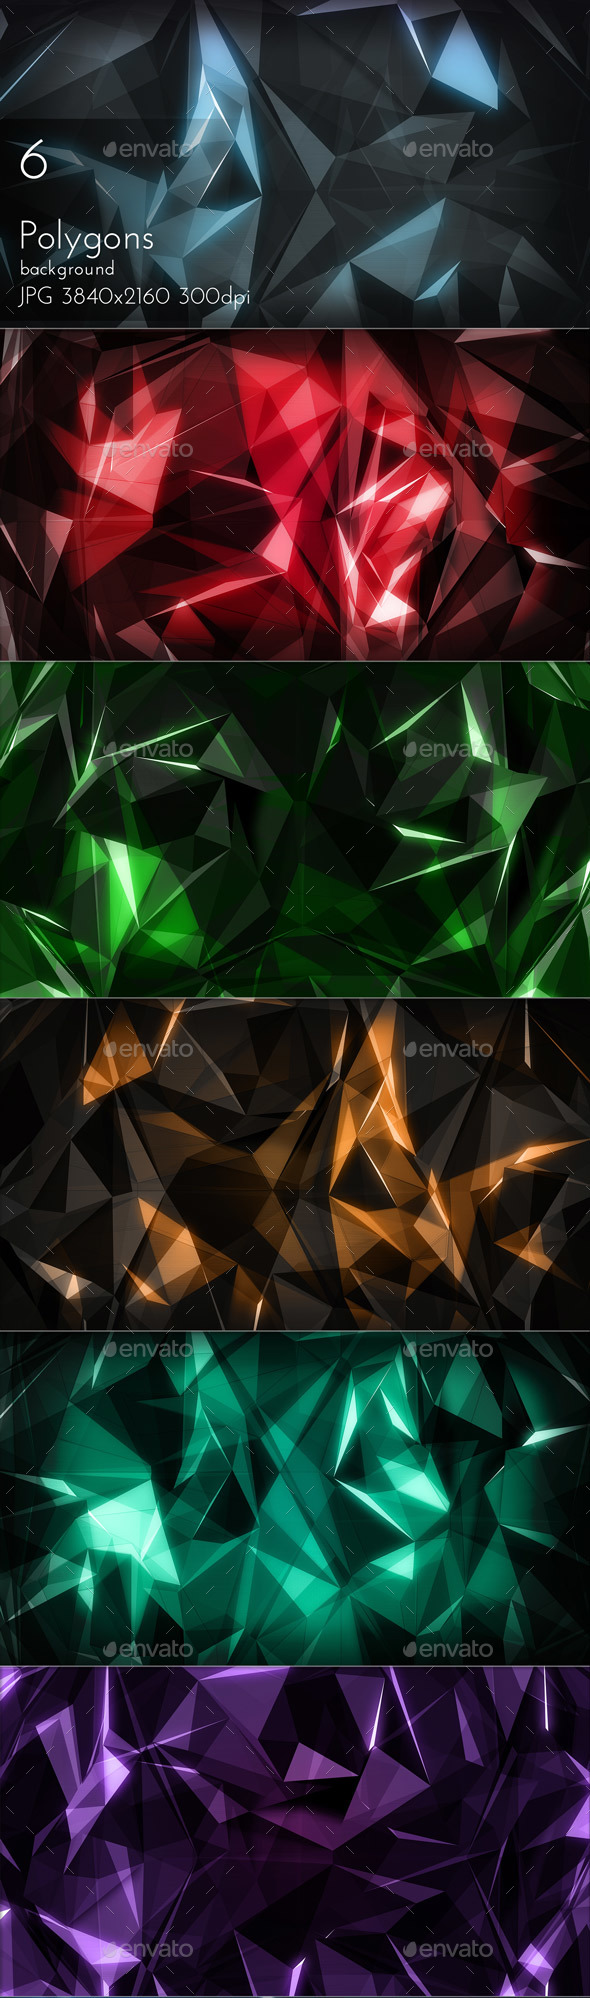 Polygons - Tech / Futuristic Backgrounds